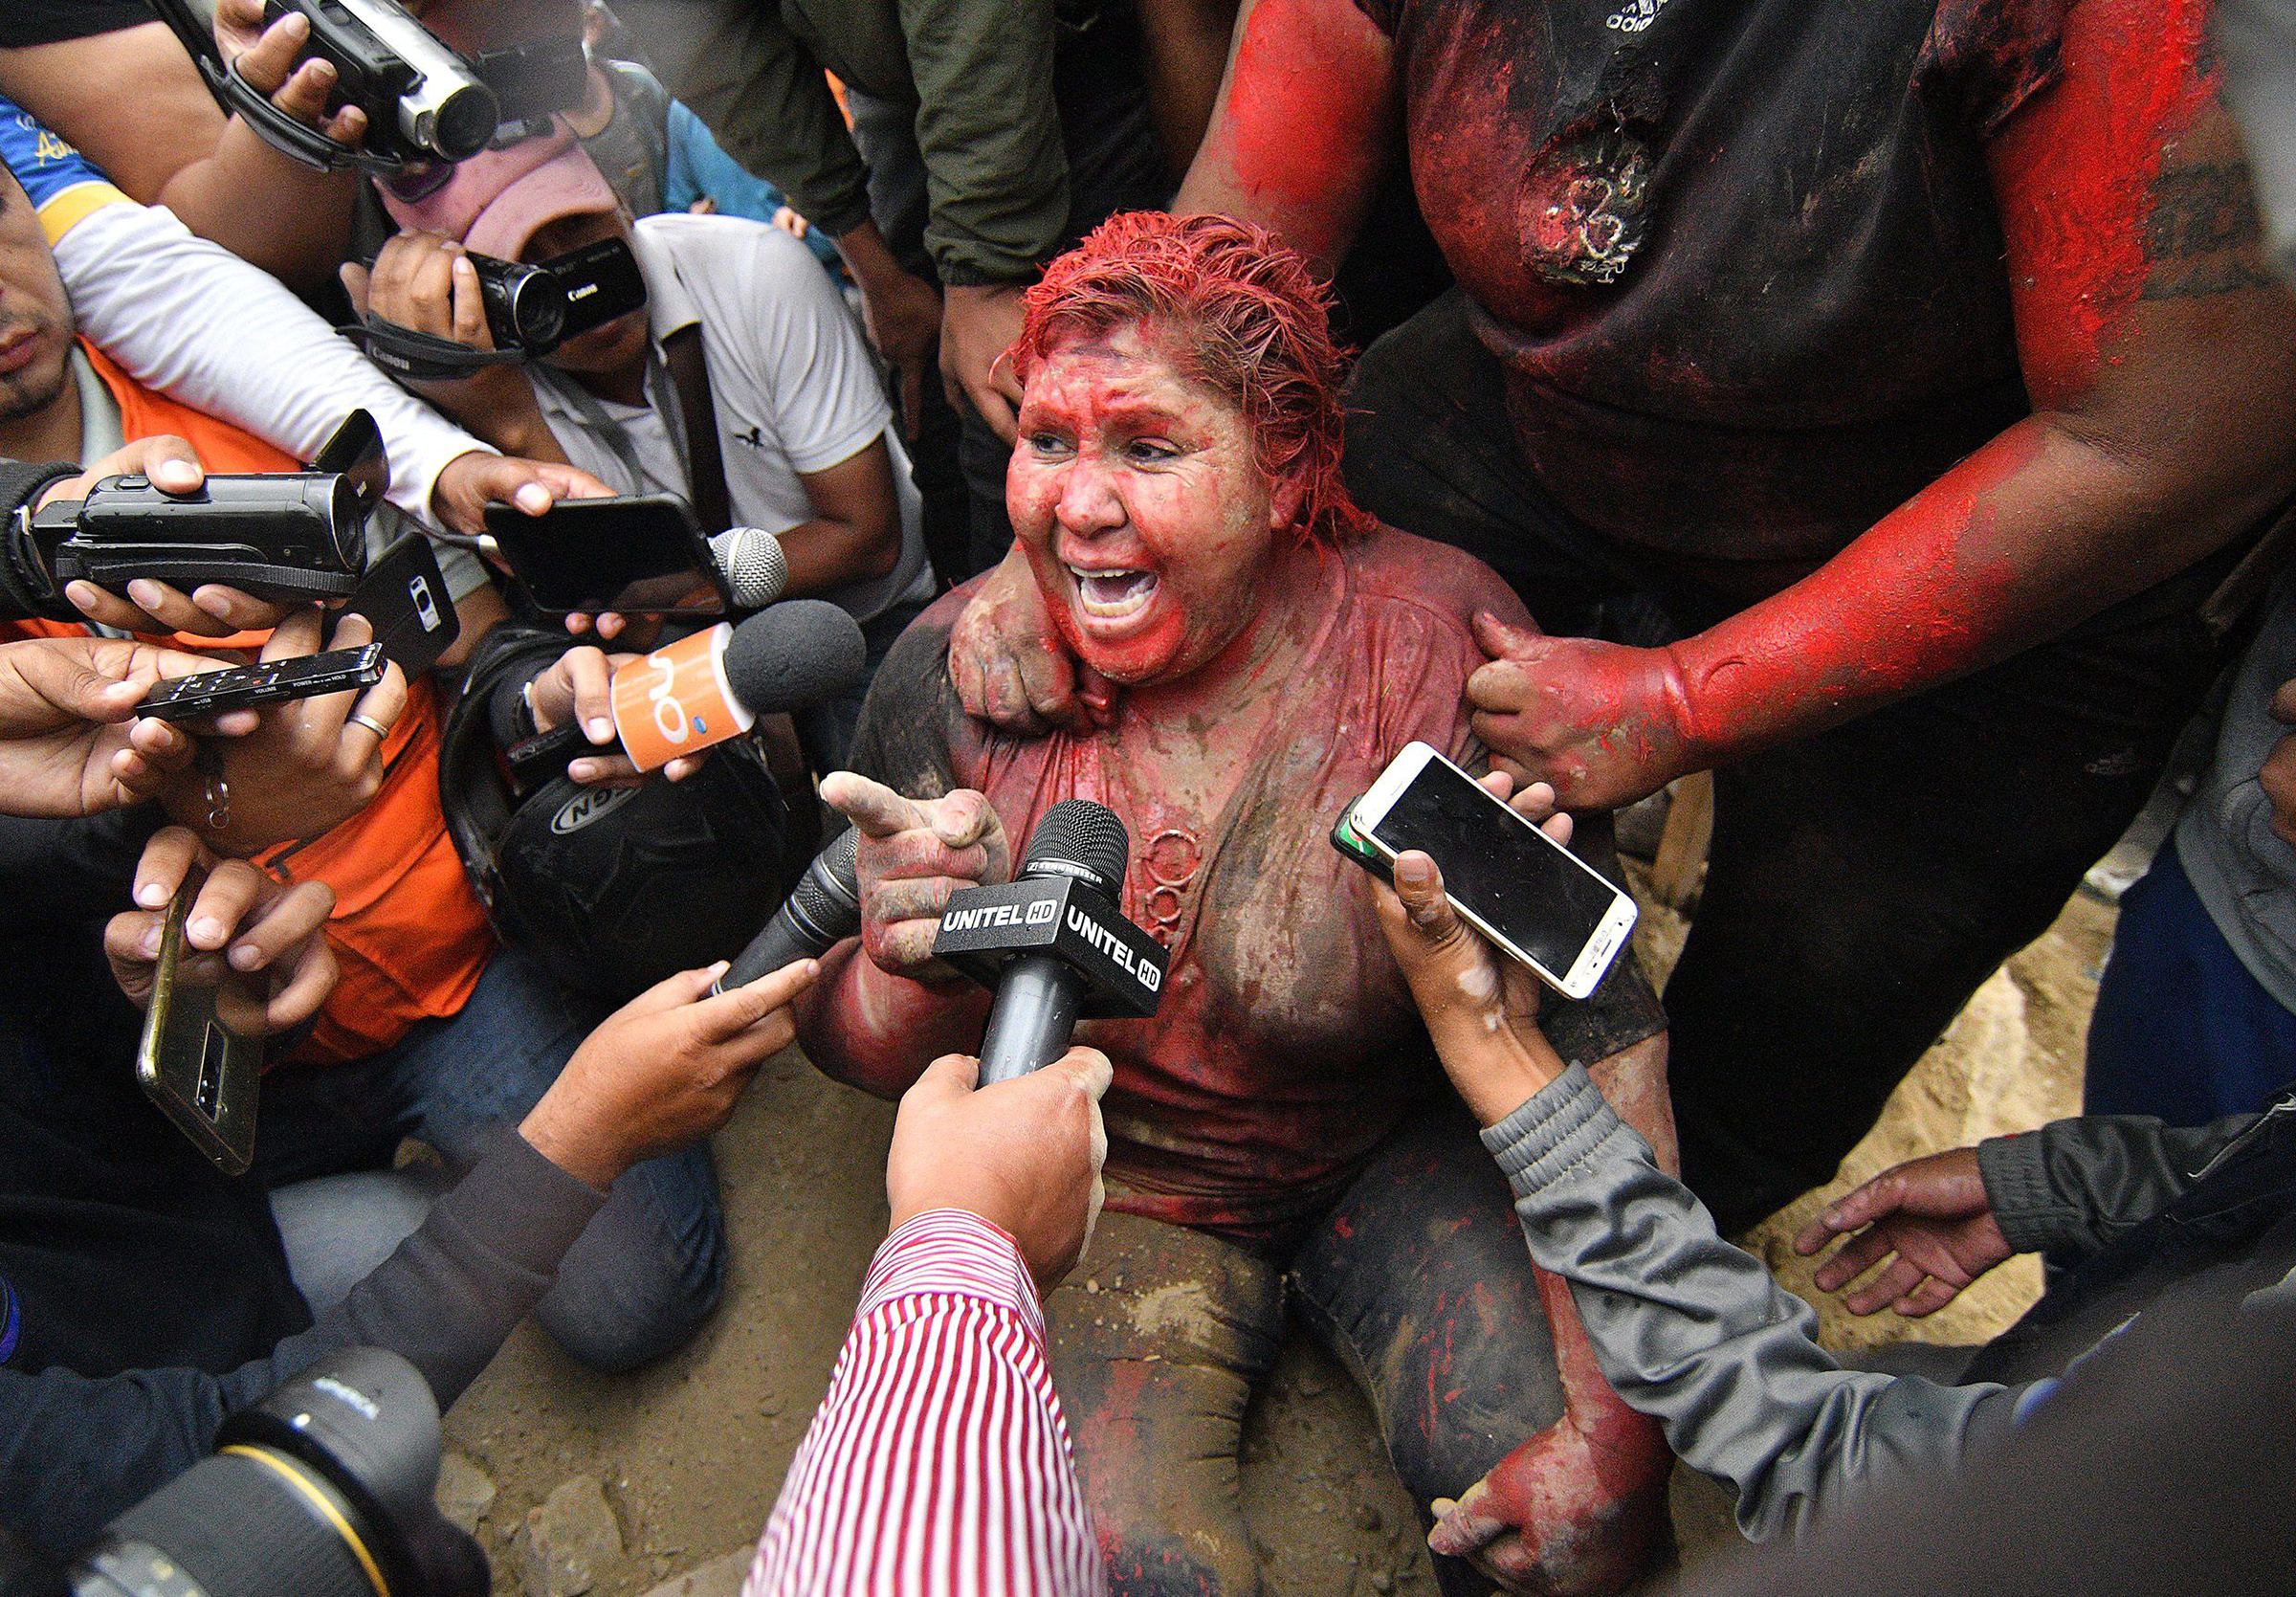 Patricia Arce, mayor of Vinto in Bolivia, speaks to the media after being attacked in the street by a crowd that sprayed her with reddish paint and cut her hair on Nov. 6, 2019.